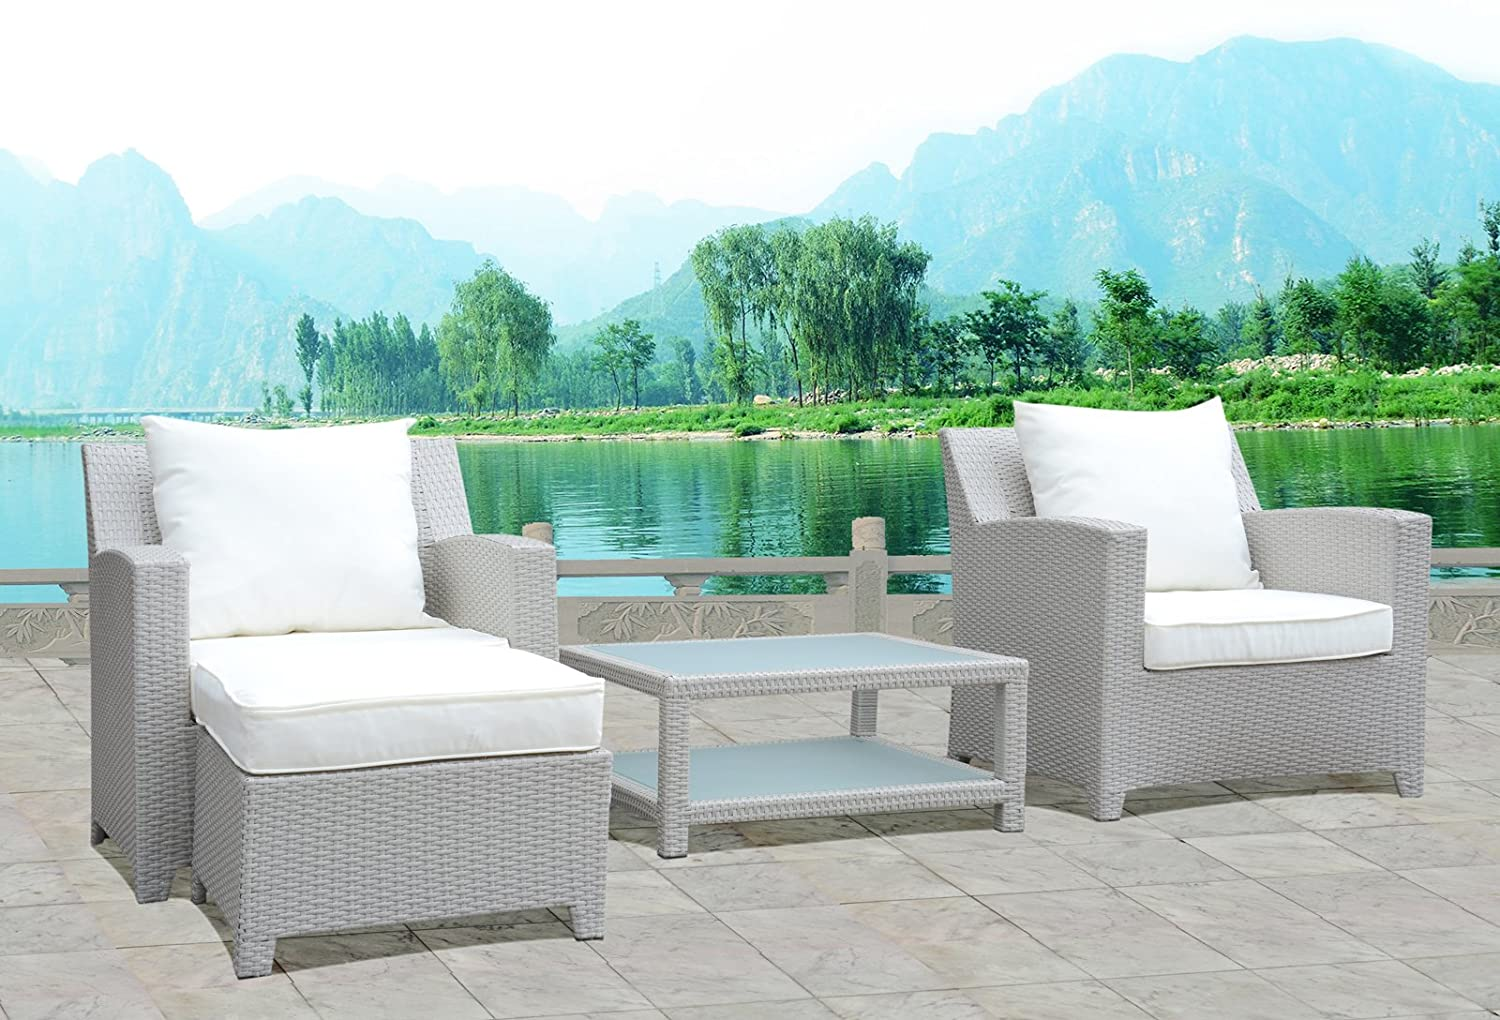 Design gartenm bel lounge sitzgruppe polyrattan 2 x sessel for Lounge tisch design